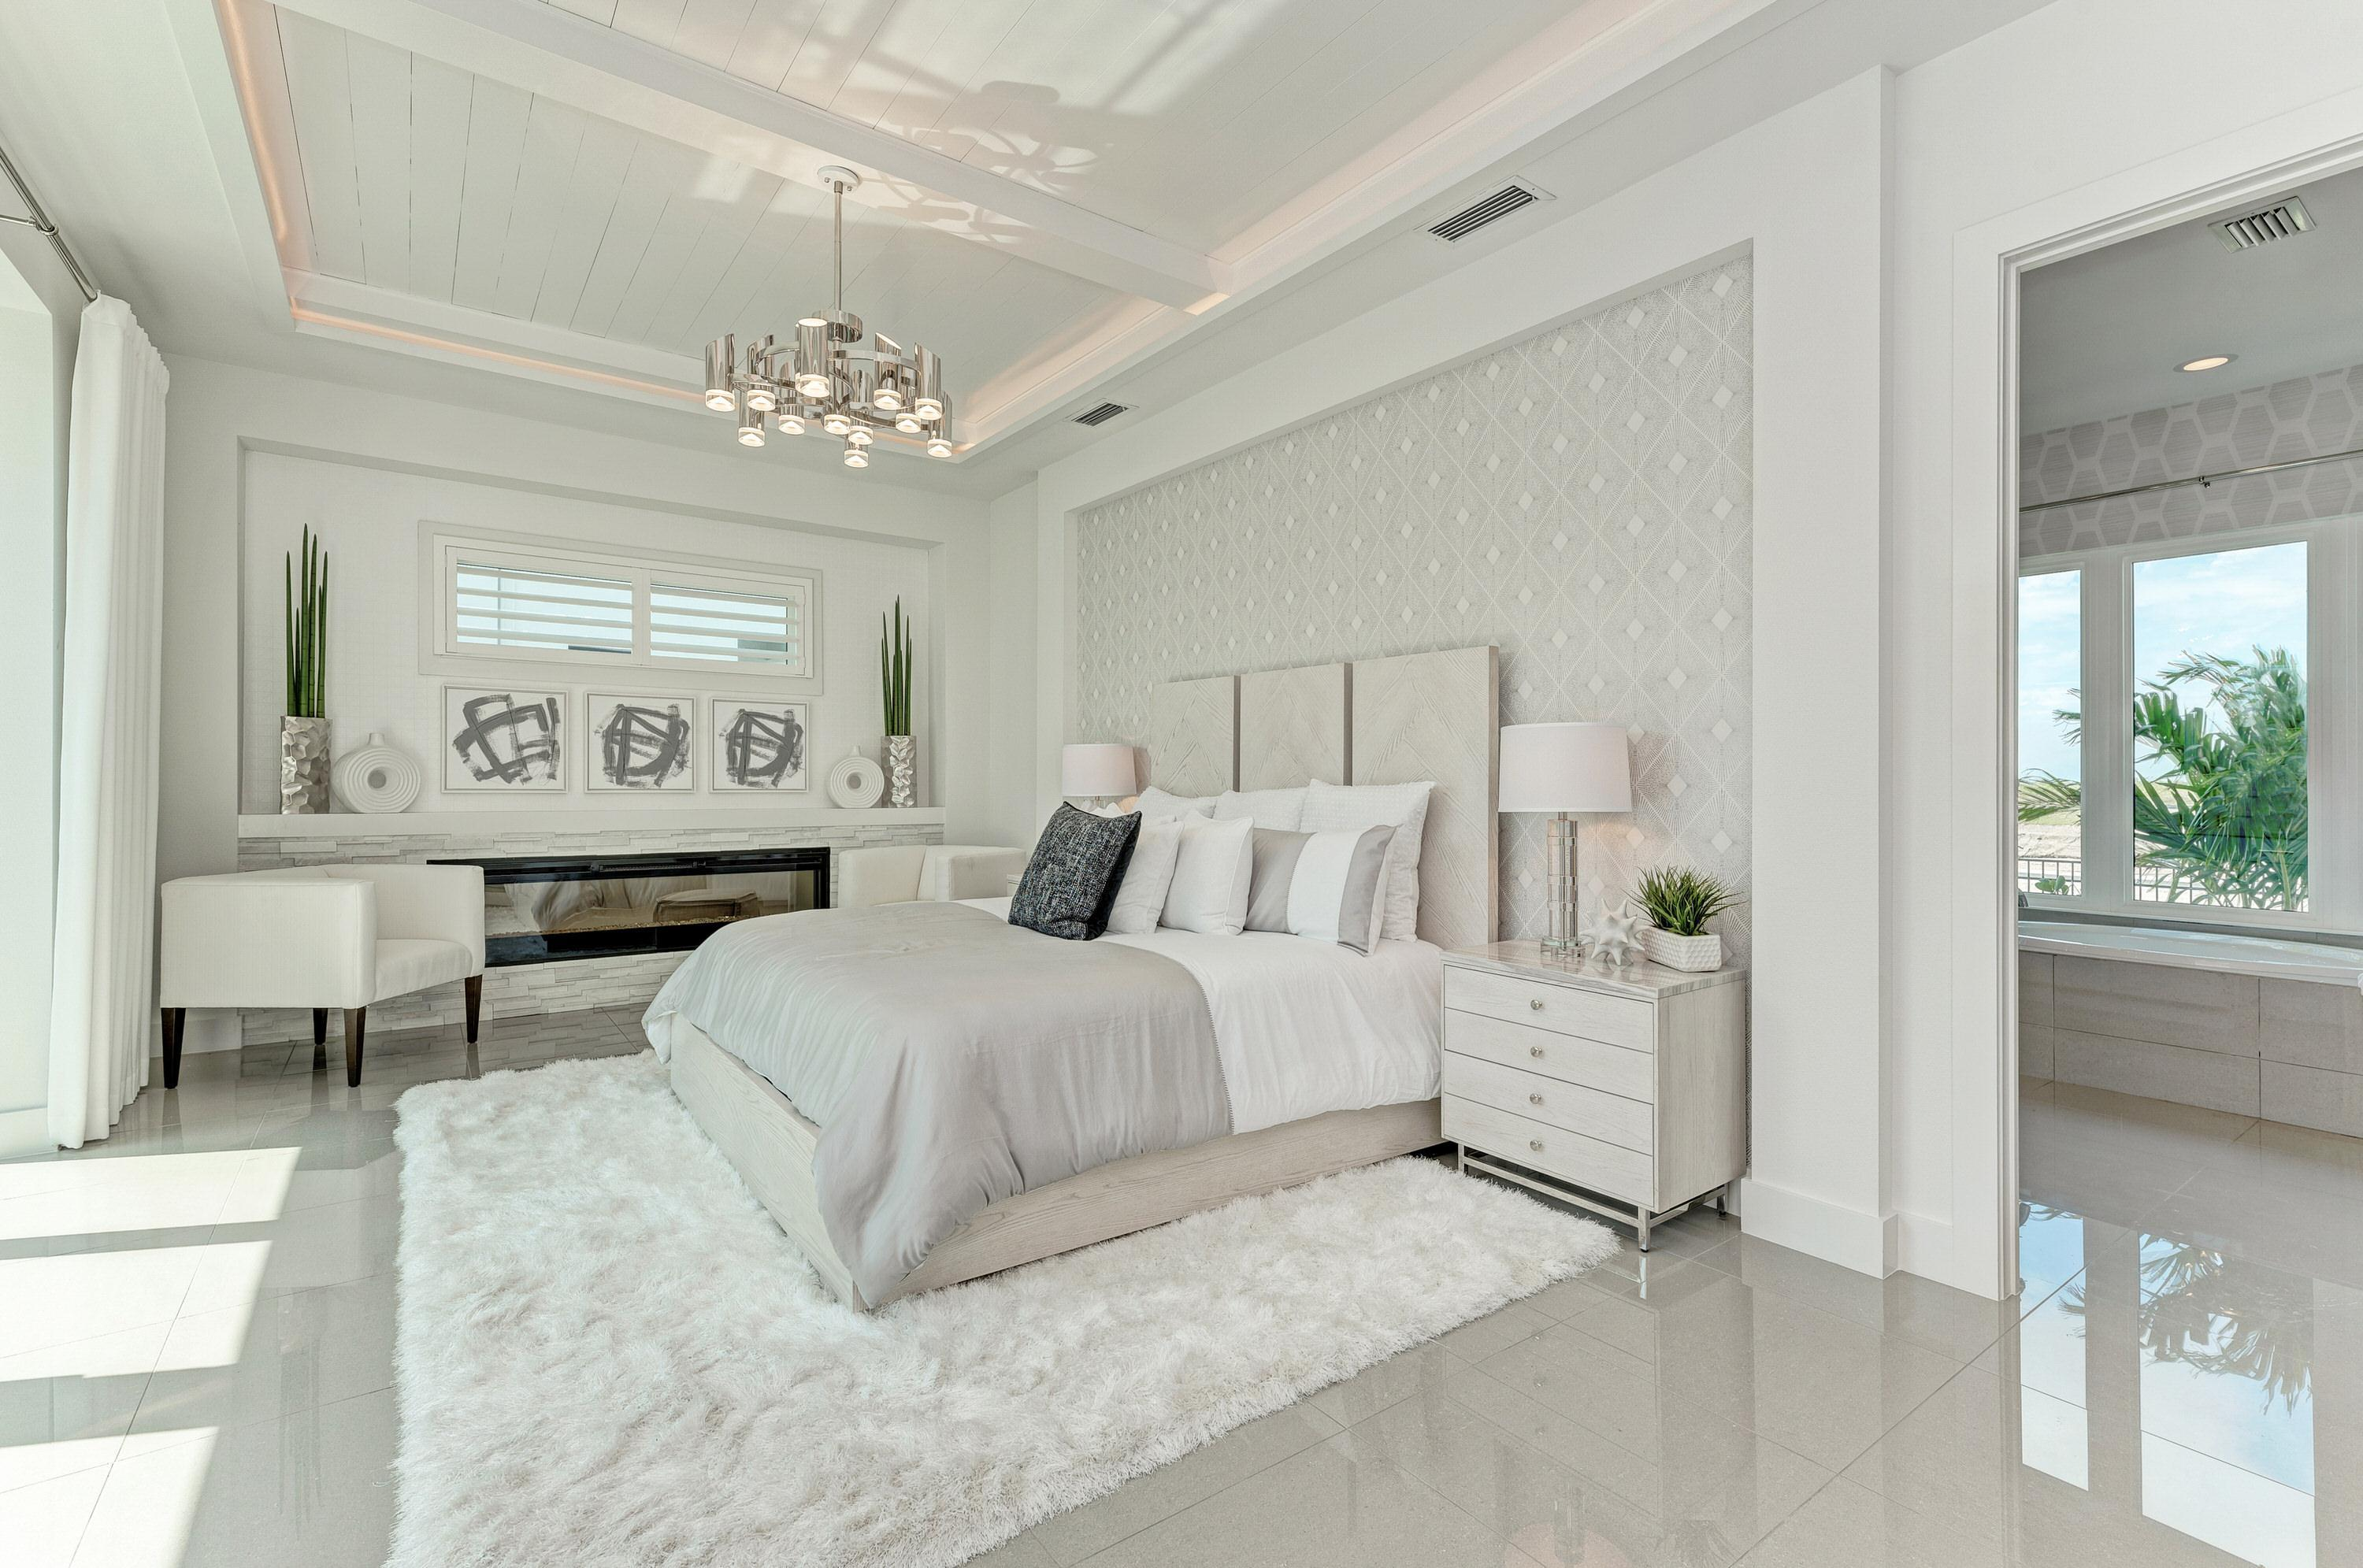 Bedroom featured in the Cat Claw By Medallion Home in Sarasota-Bradenton, FL